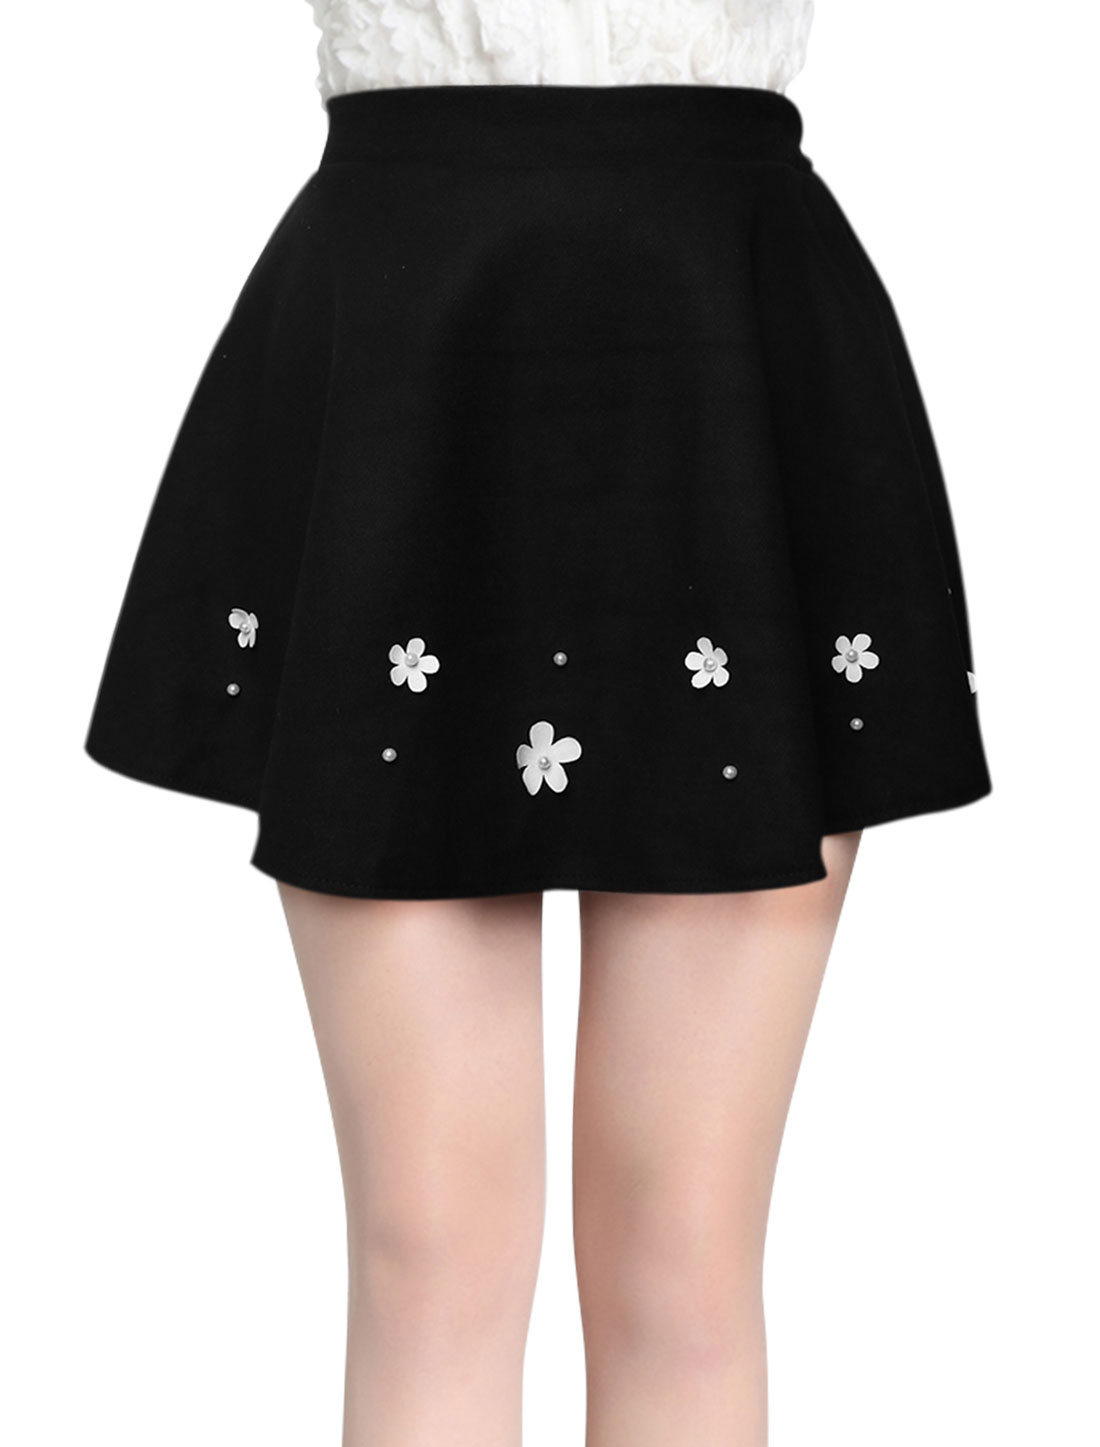 Natural Waist Full Lined Casual Mini Skirt for Women Black XS